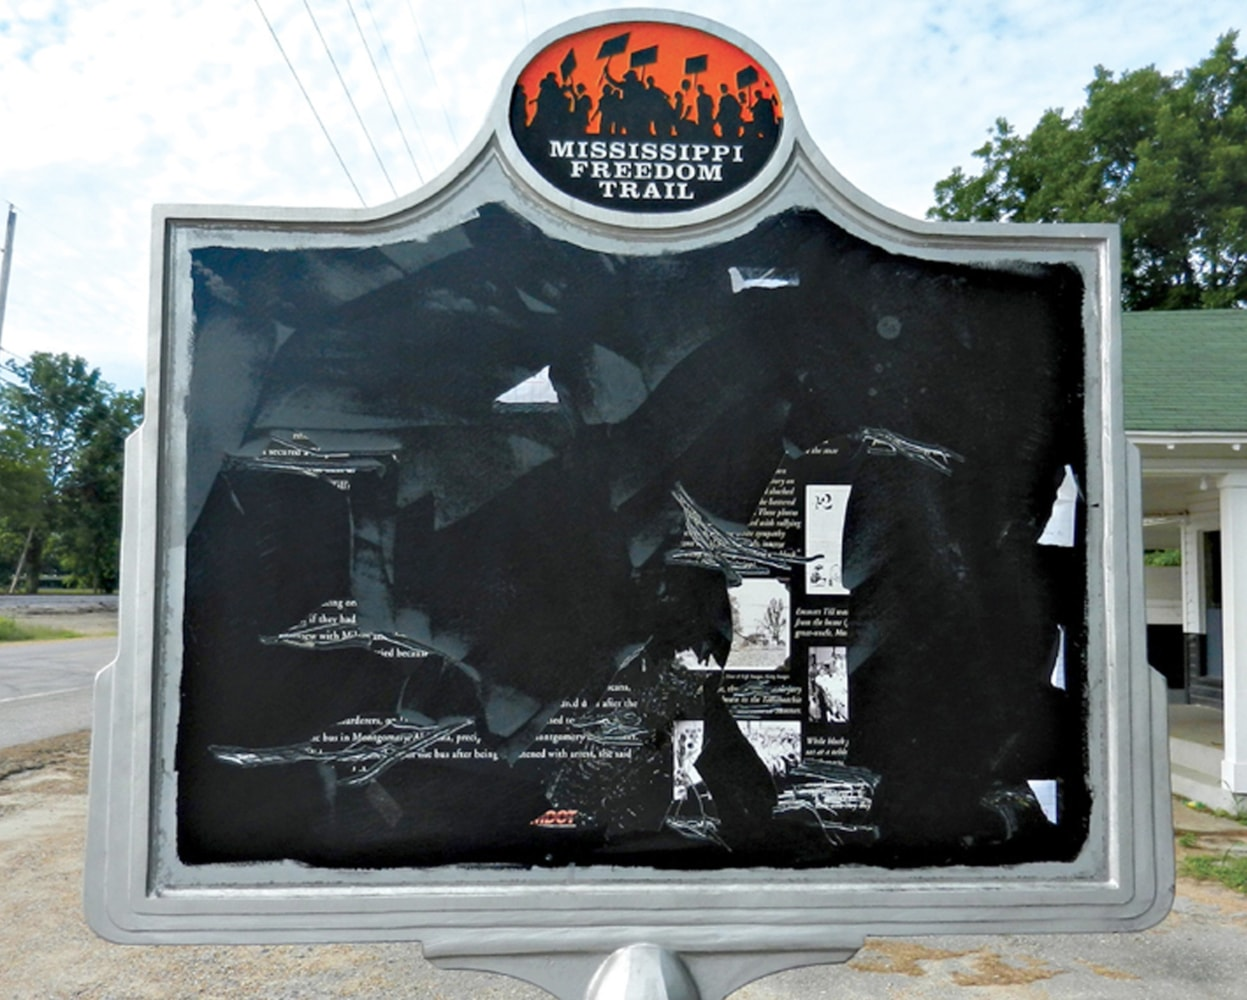 Another sign marking a scene from Emmett Till's murder has been vandalized